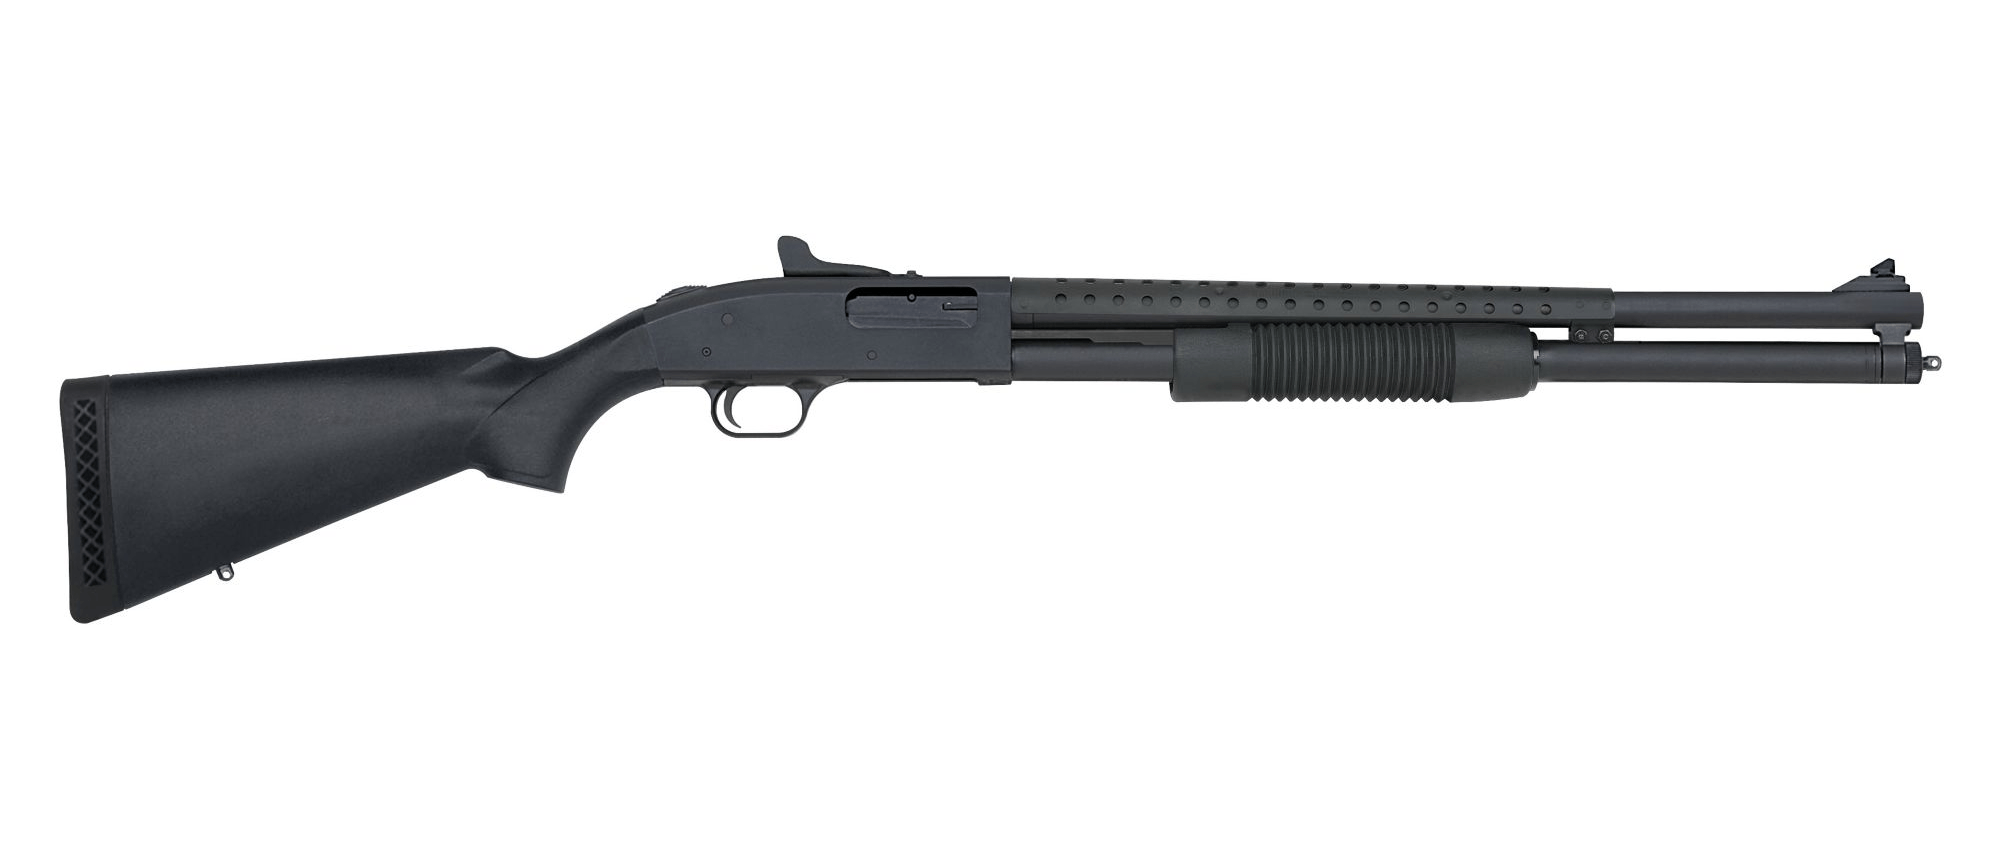 Mossberg 500 tactical shotgun